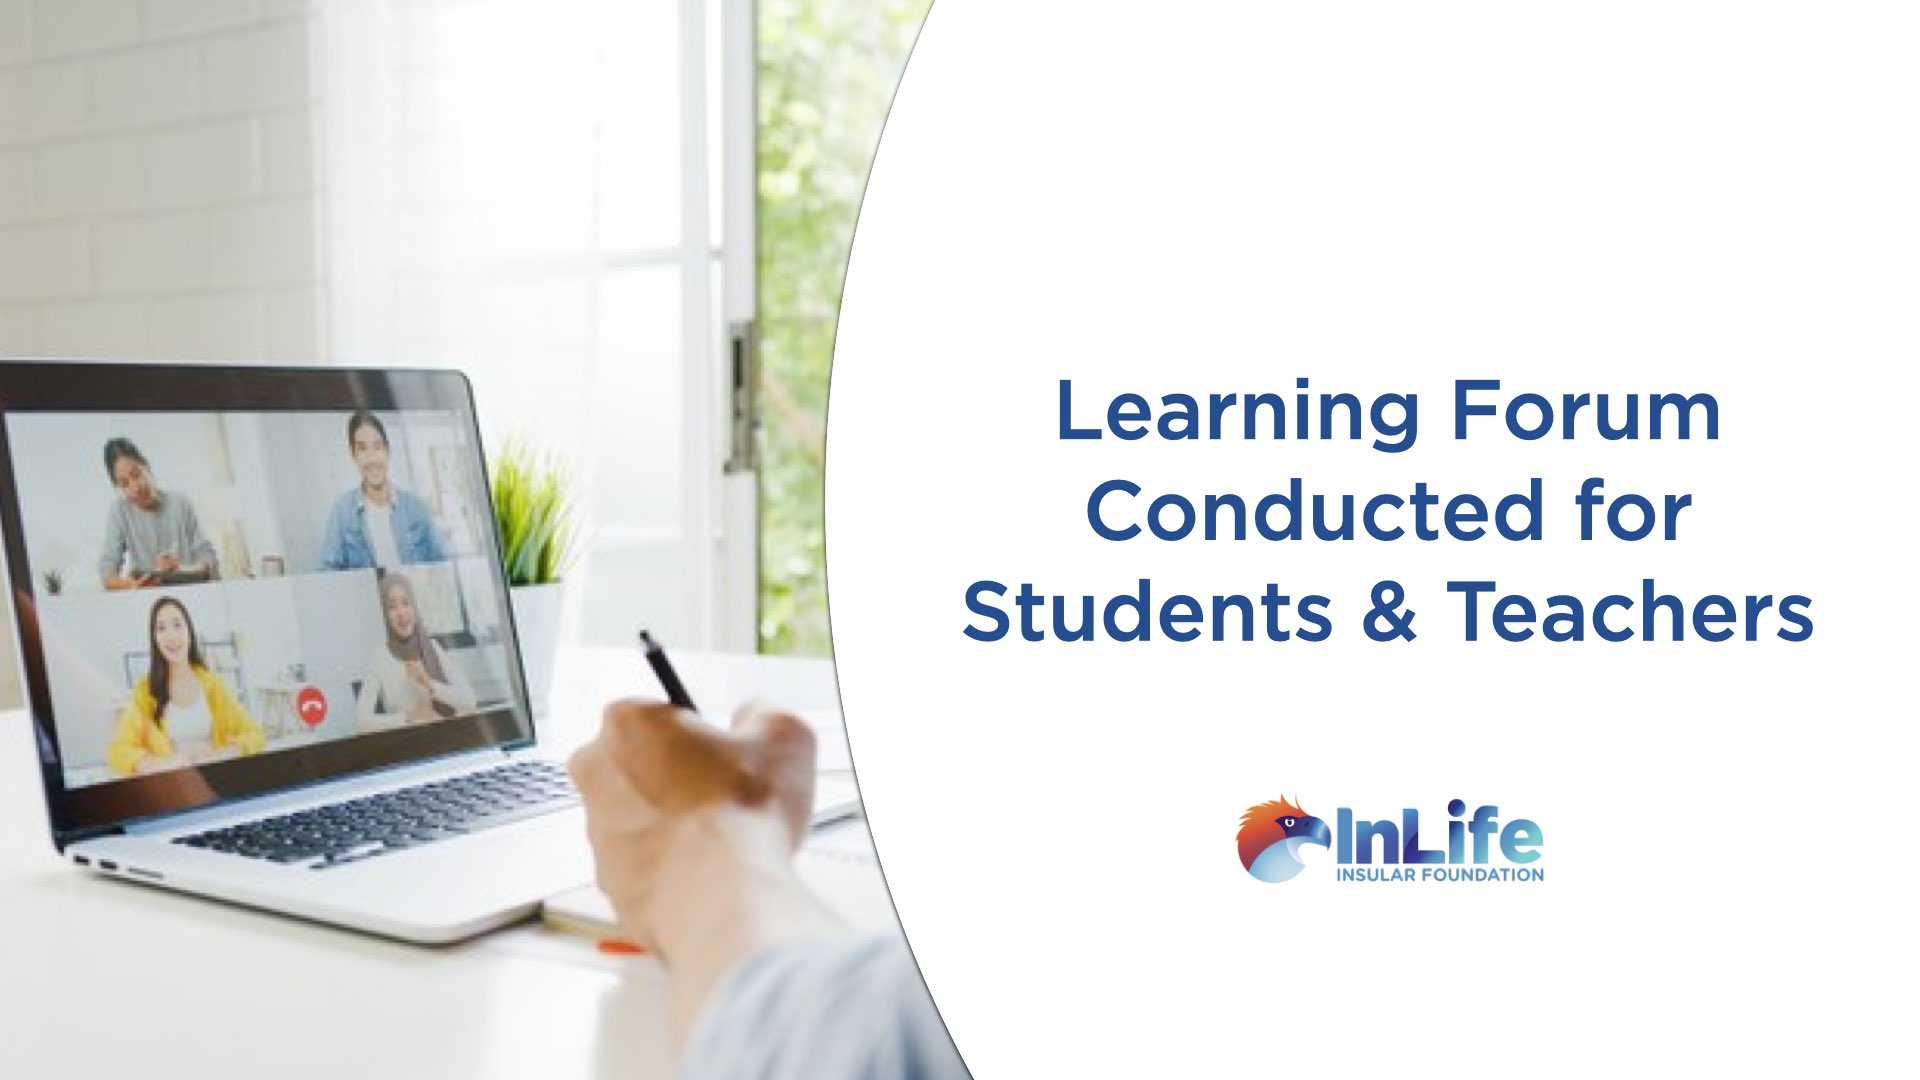 Insular Foundation Conducts Online Learning Forum For Students, Teachers